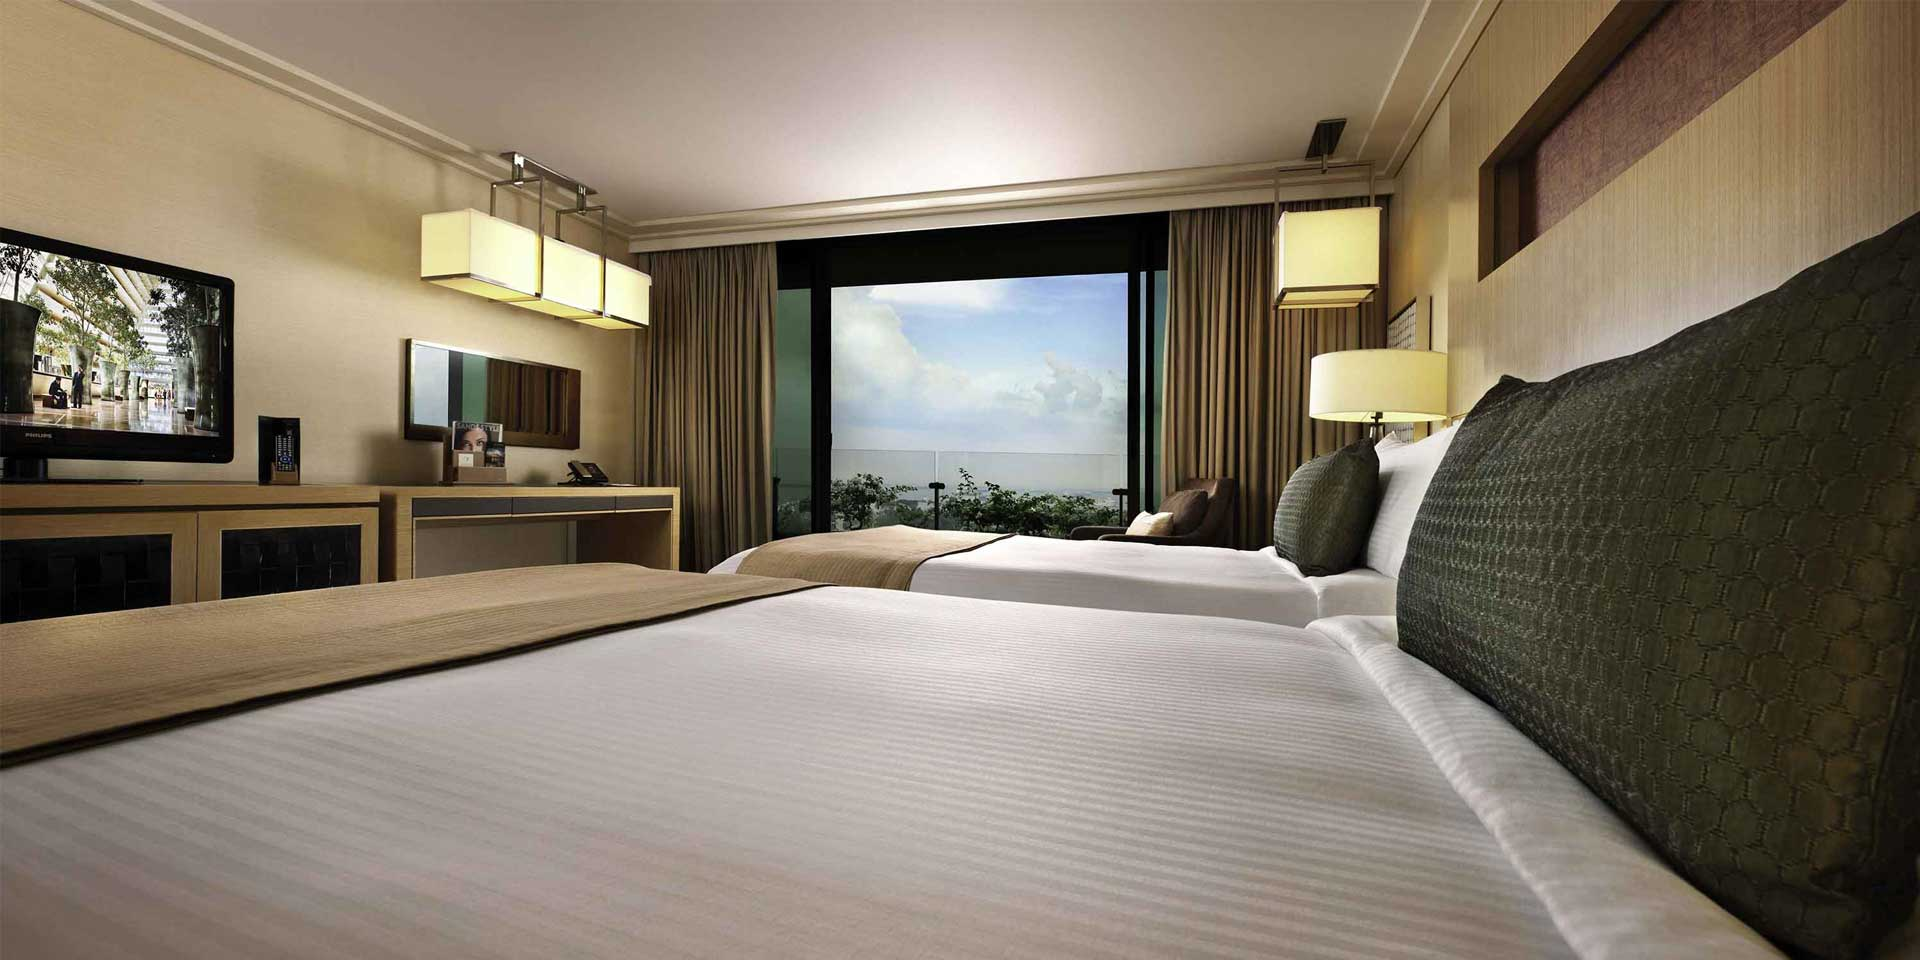 Premier room in marina bay sands singapore hotel for Best private dining rooms twin cities